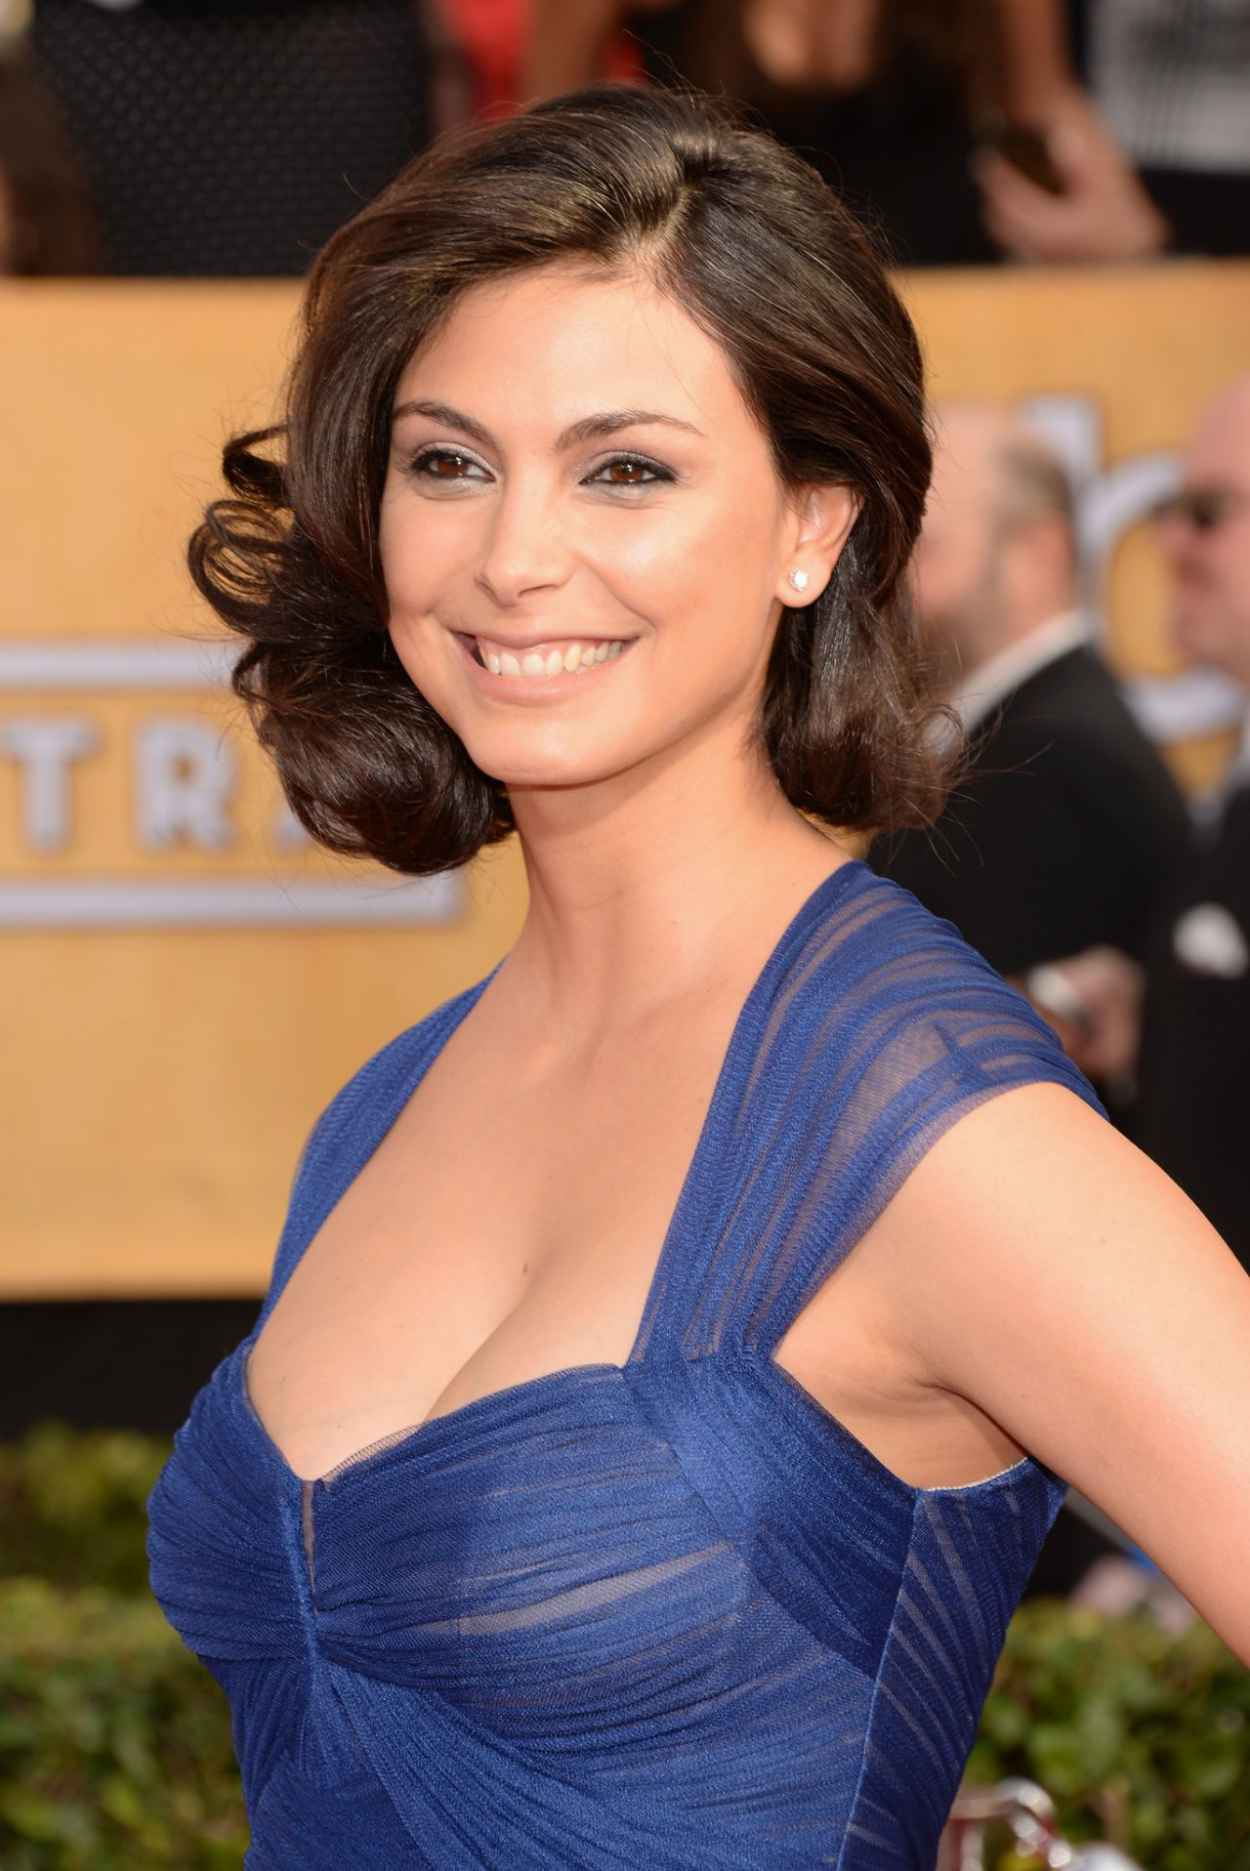 Morena Baccarin Wears Monique Lhuillier Dress at 2015 SAG Awards in Los Angeles-1